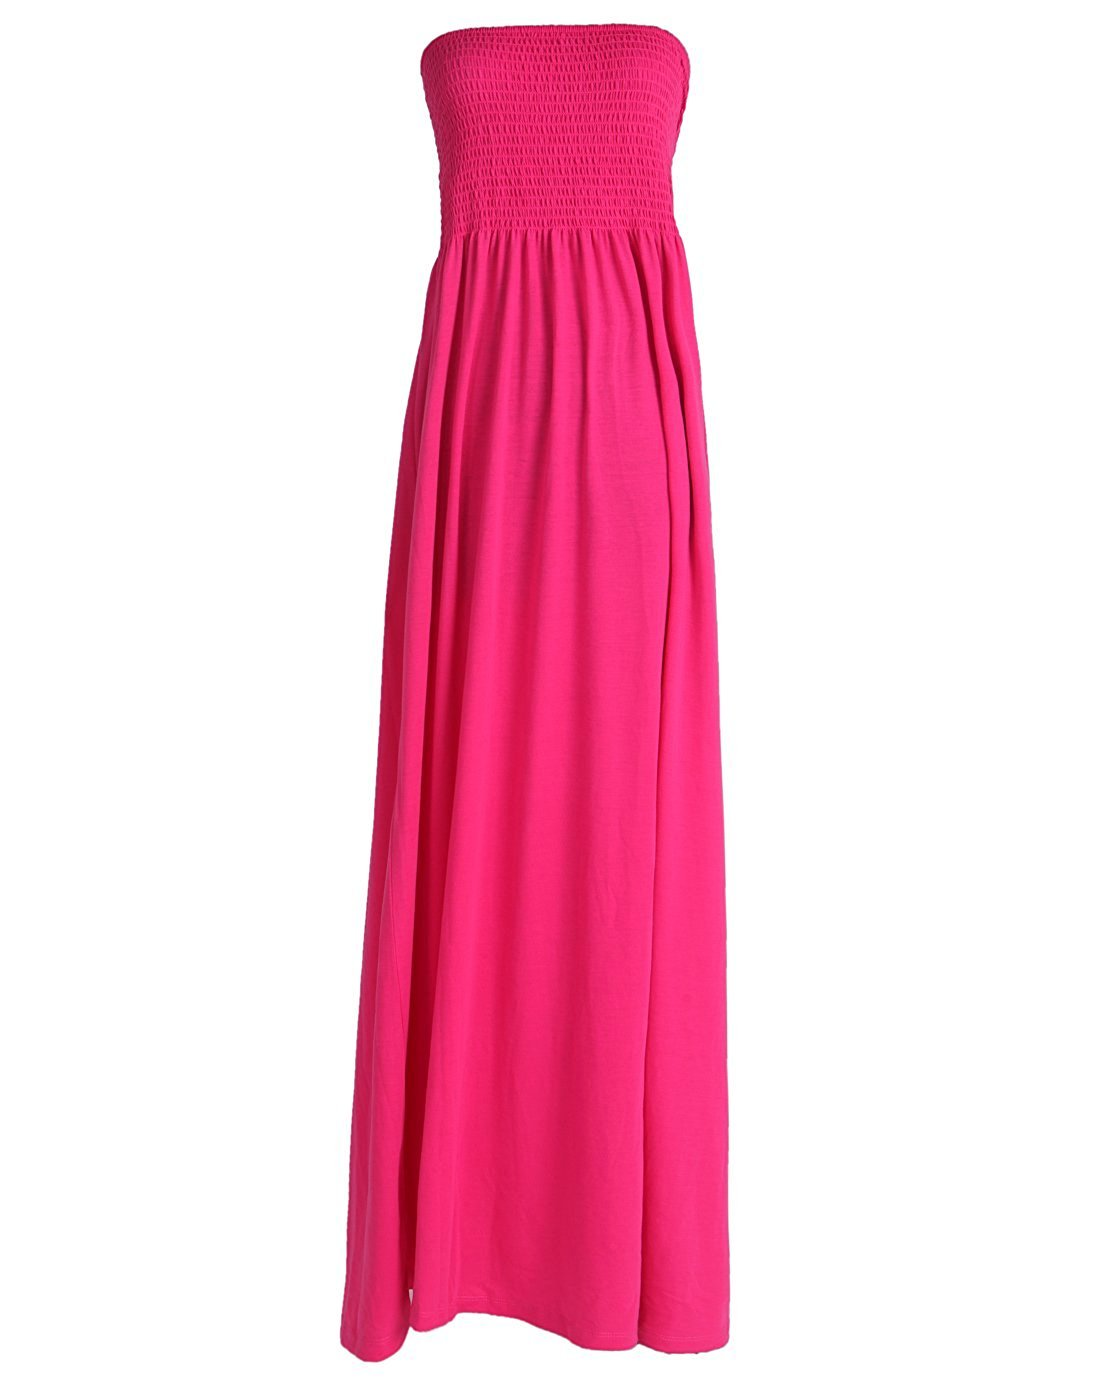 Tina Vent Beautiful Women\'s Strapless Dress Plus Size Tube Top Long Skirt  Sundress Cover Up (Small, Hot Pink)